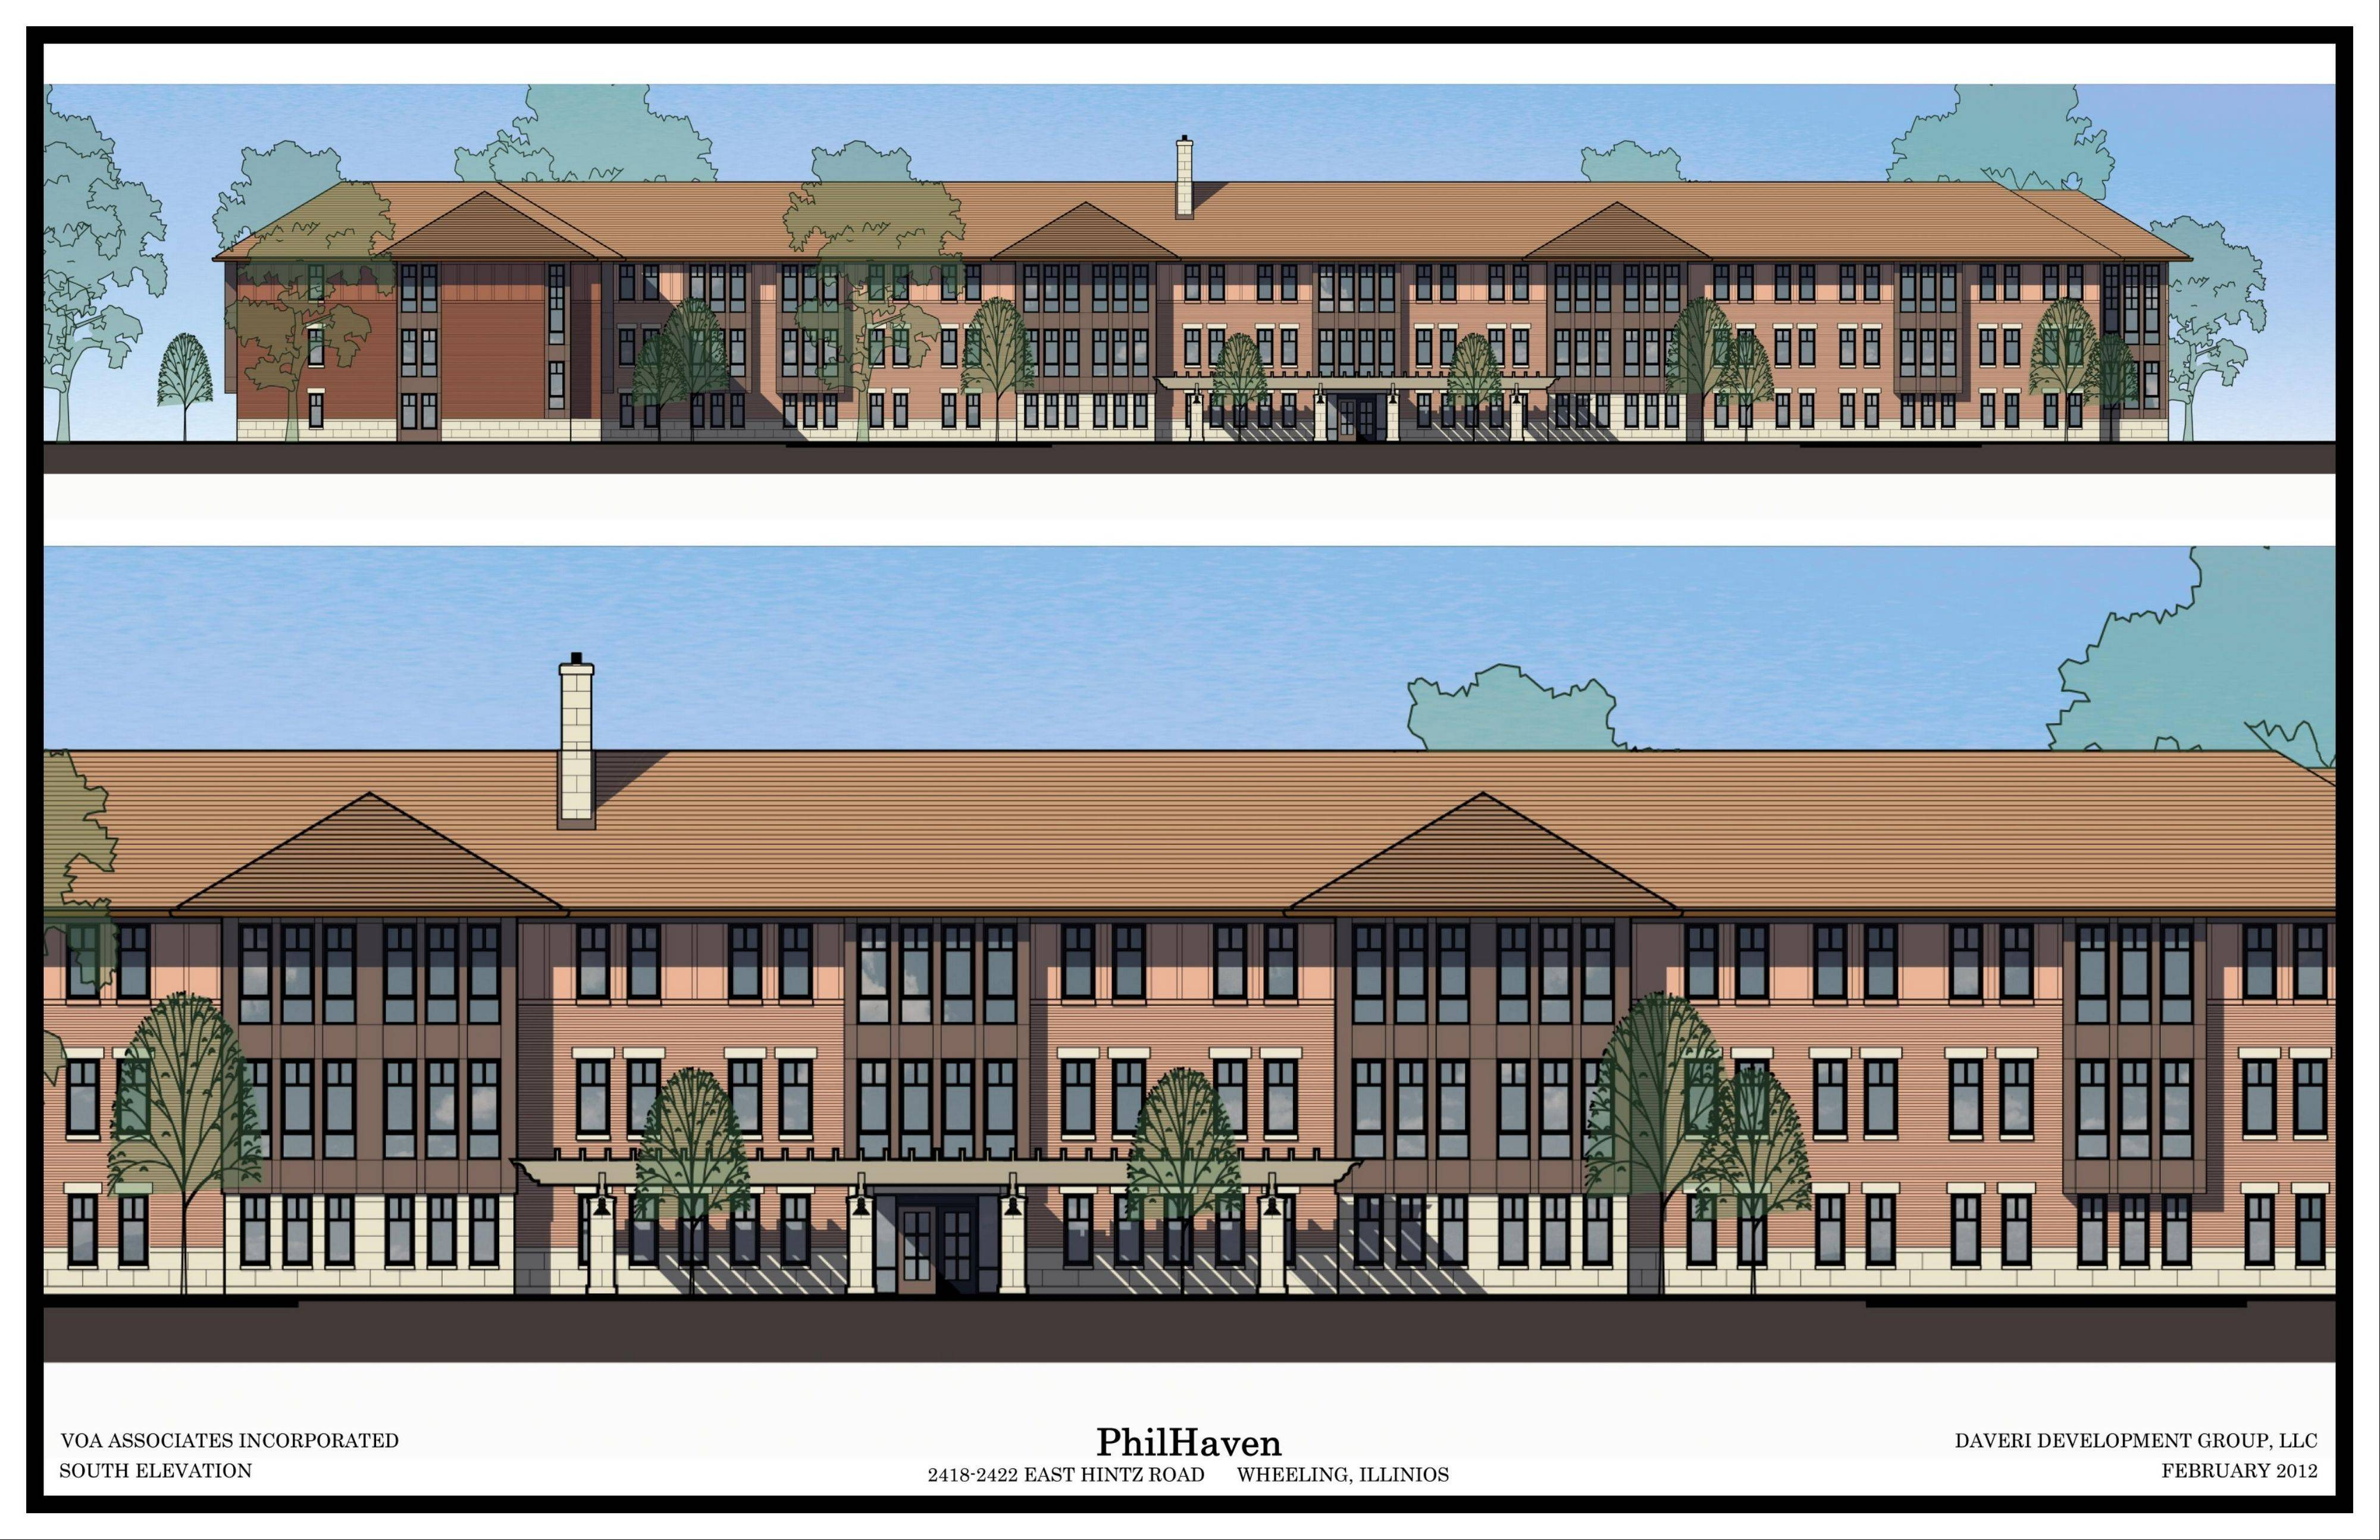 Rendering of PhilHaven provided by Daveri Development LLC.